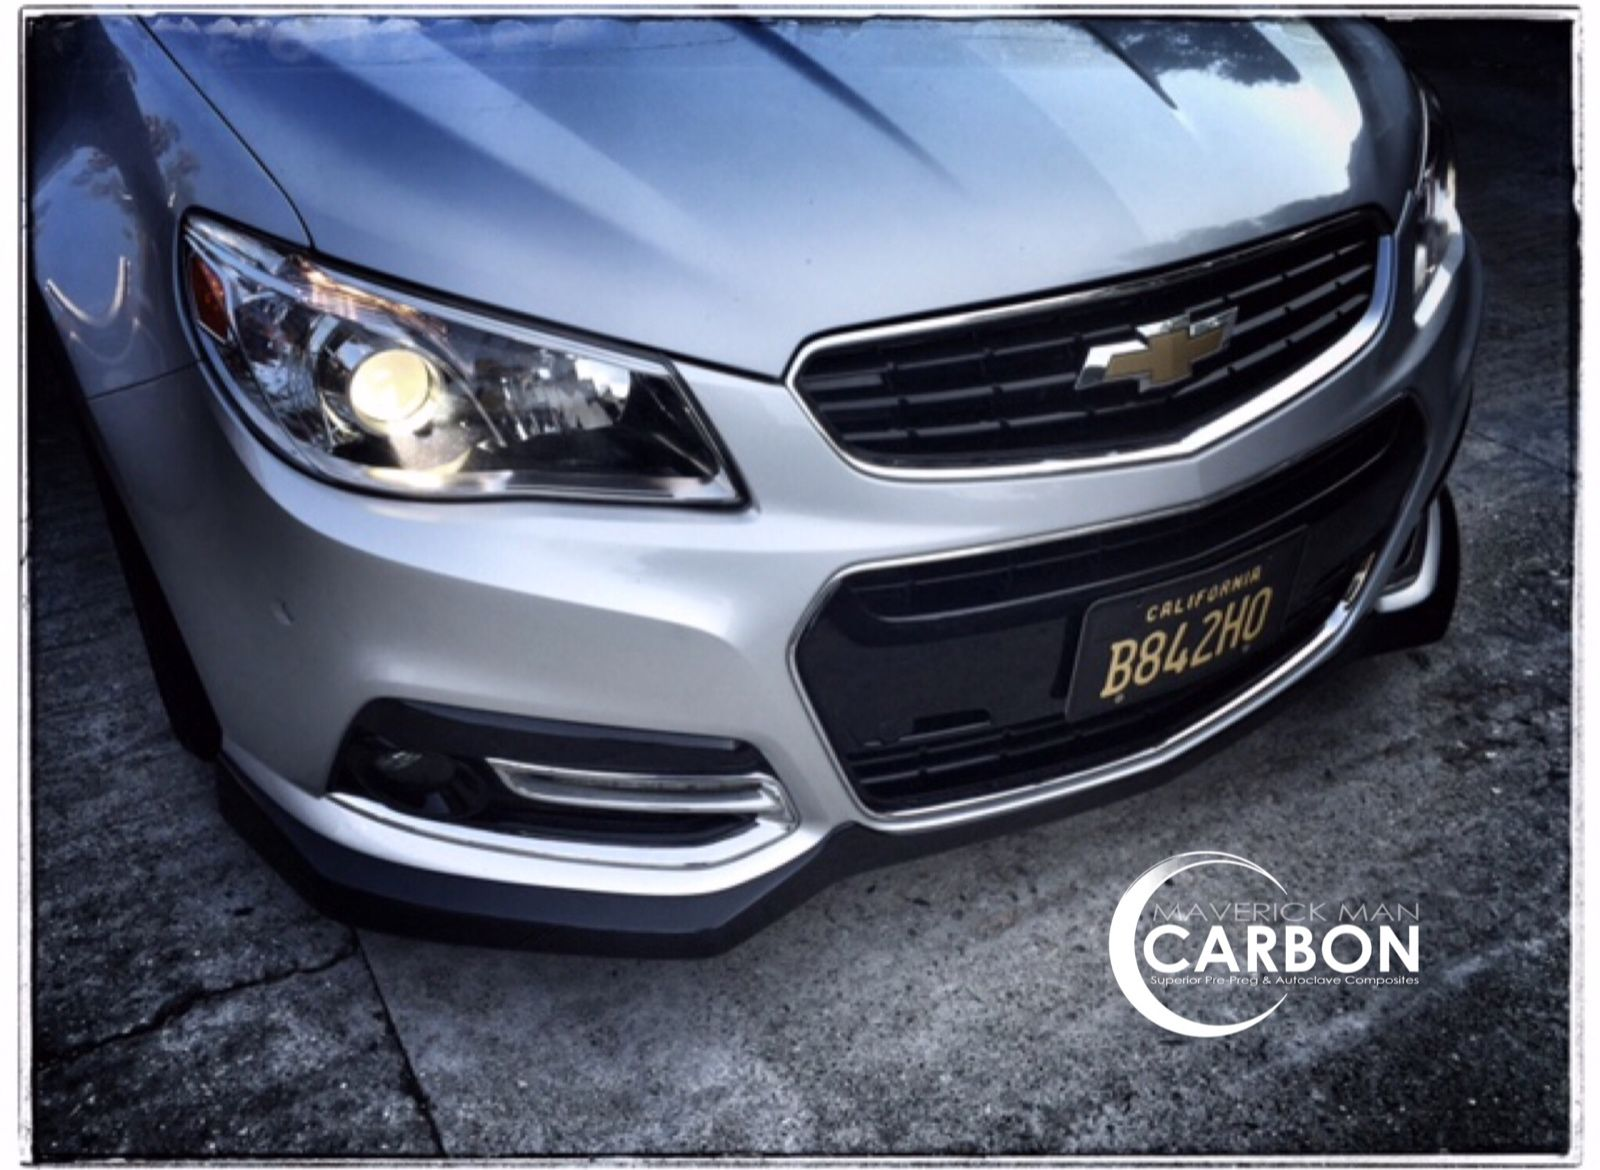 another happy chevy ss owner with a maverick man carbon front lip chevrolet lumina  [ 1600 x 1170 Pixel ]